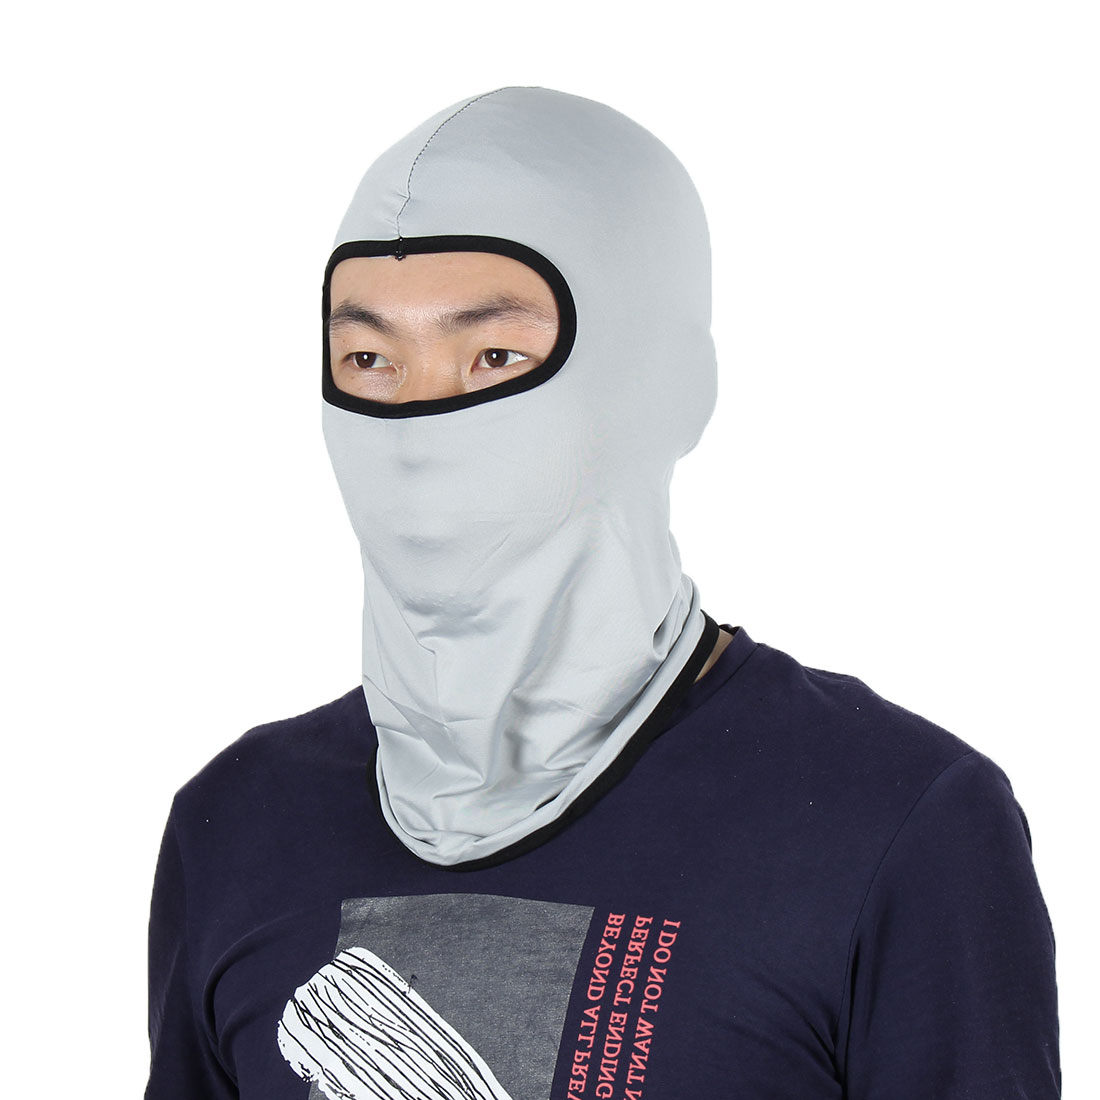 Full Face Mask Outdoor Activities Cycling Biking Neck Hat Helmet Balaclava Gray by Unique-Bargains